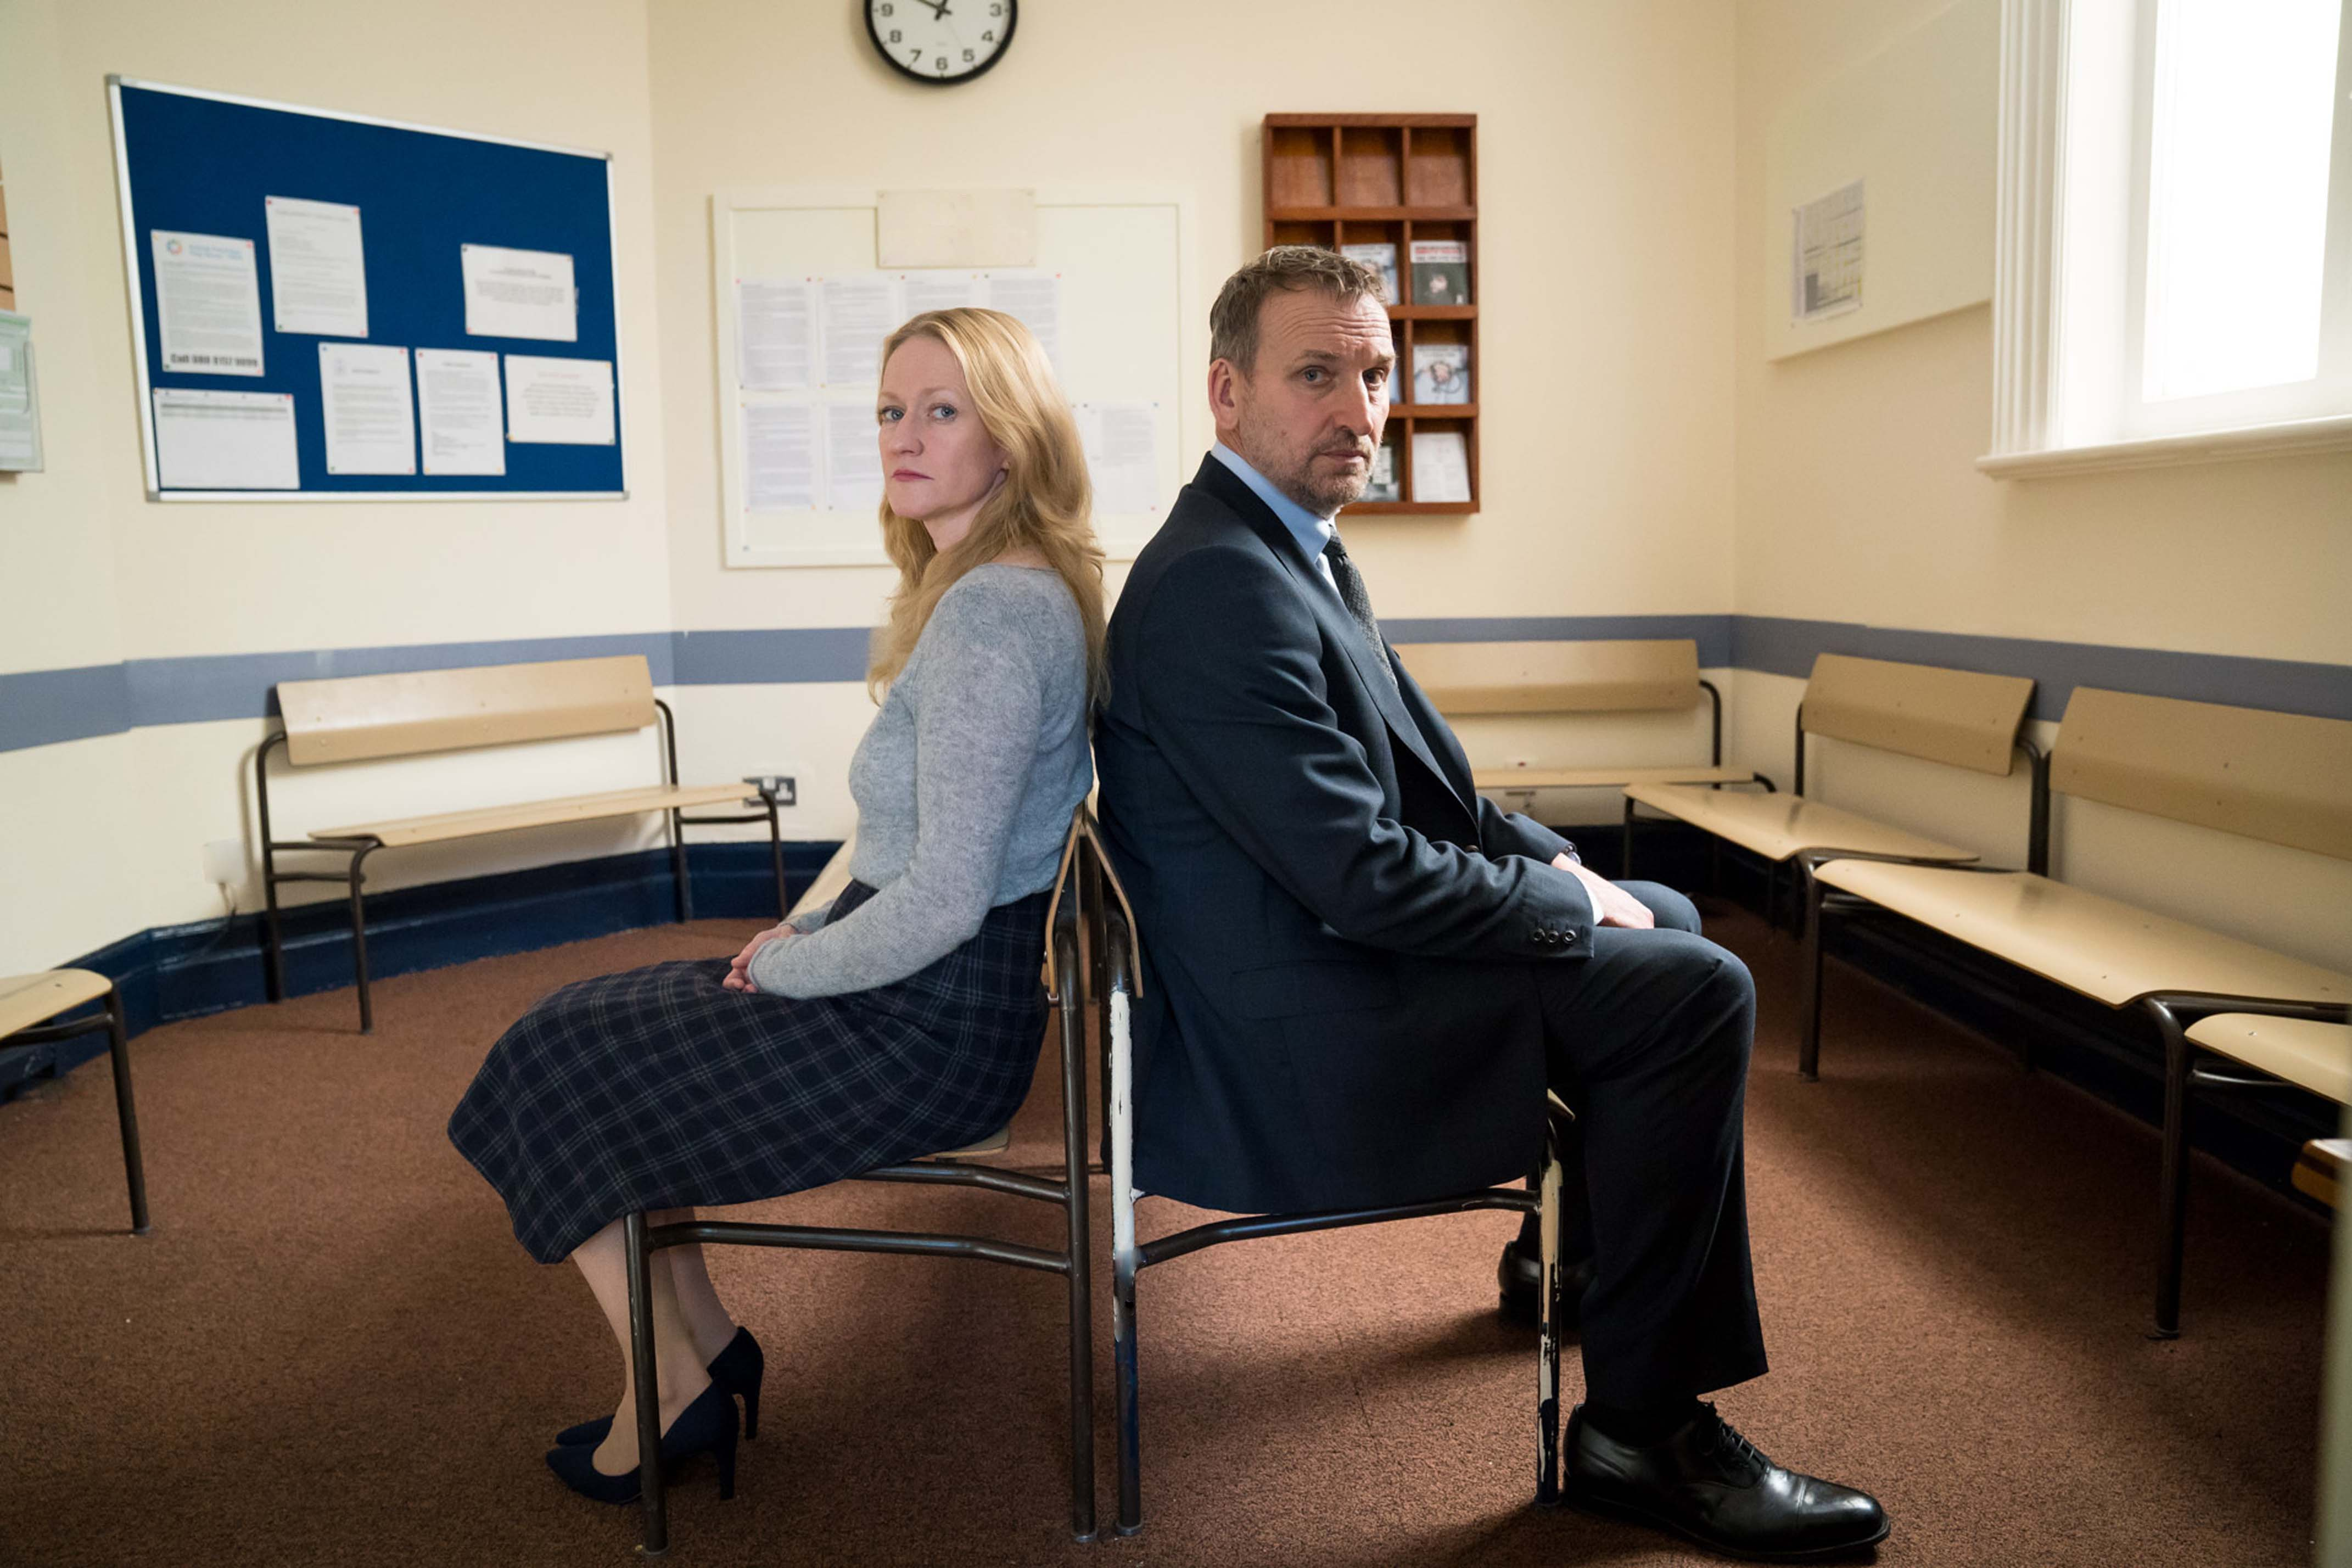 Programme Name: Come Home  - TX: n/a - Episode: Come Home - EP 3 (No. 3) - Picture Shows: Marie and Greg in the court waiting room  Marie (PAULA MALCOMSON), Greg (CHRISTOPHER ECCLESTON) - (C) Red Productions Limited  - Photographer: Steffan Hill